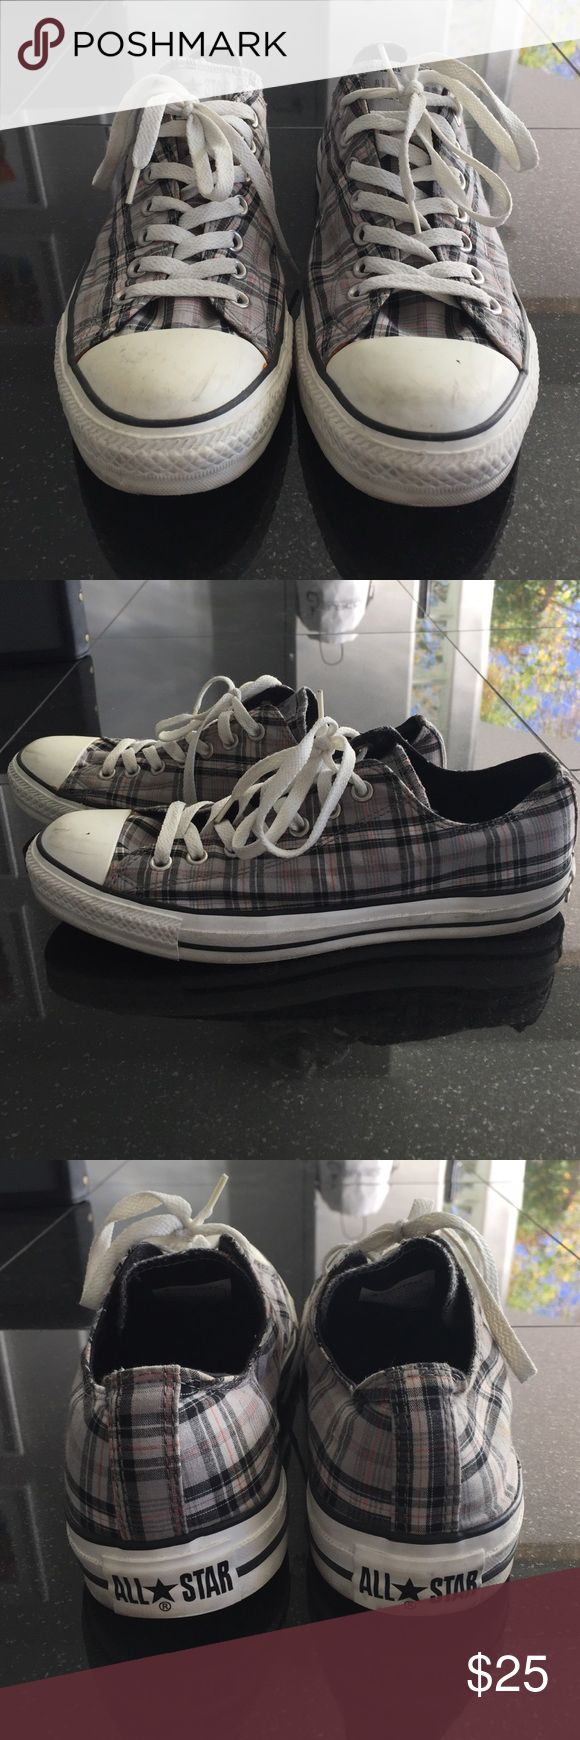 Converse shoes Men's All Star Converse. Women's size 11 or Men's size 9. Grey, black, Orange and white plaid. Converse Shoes Sneakers